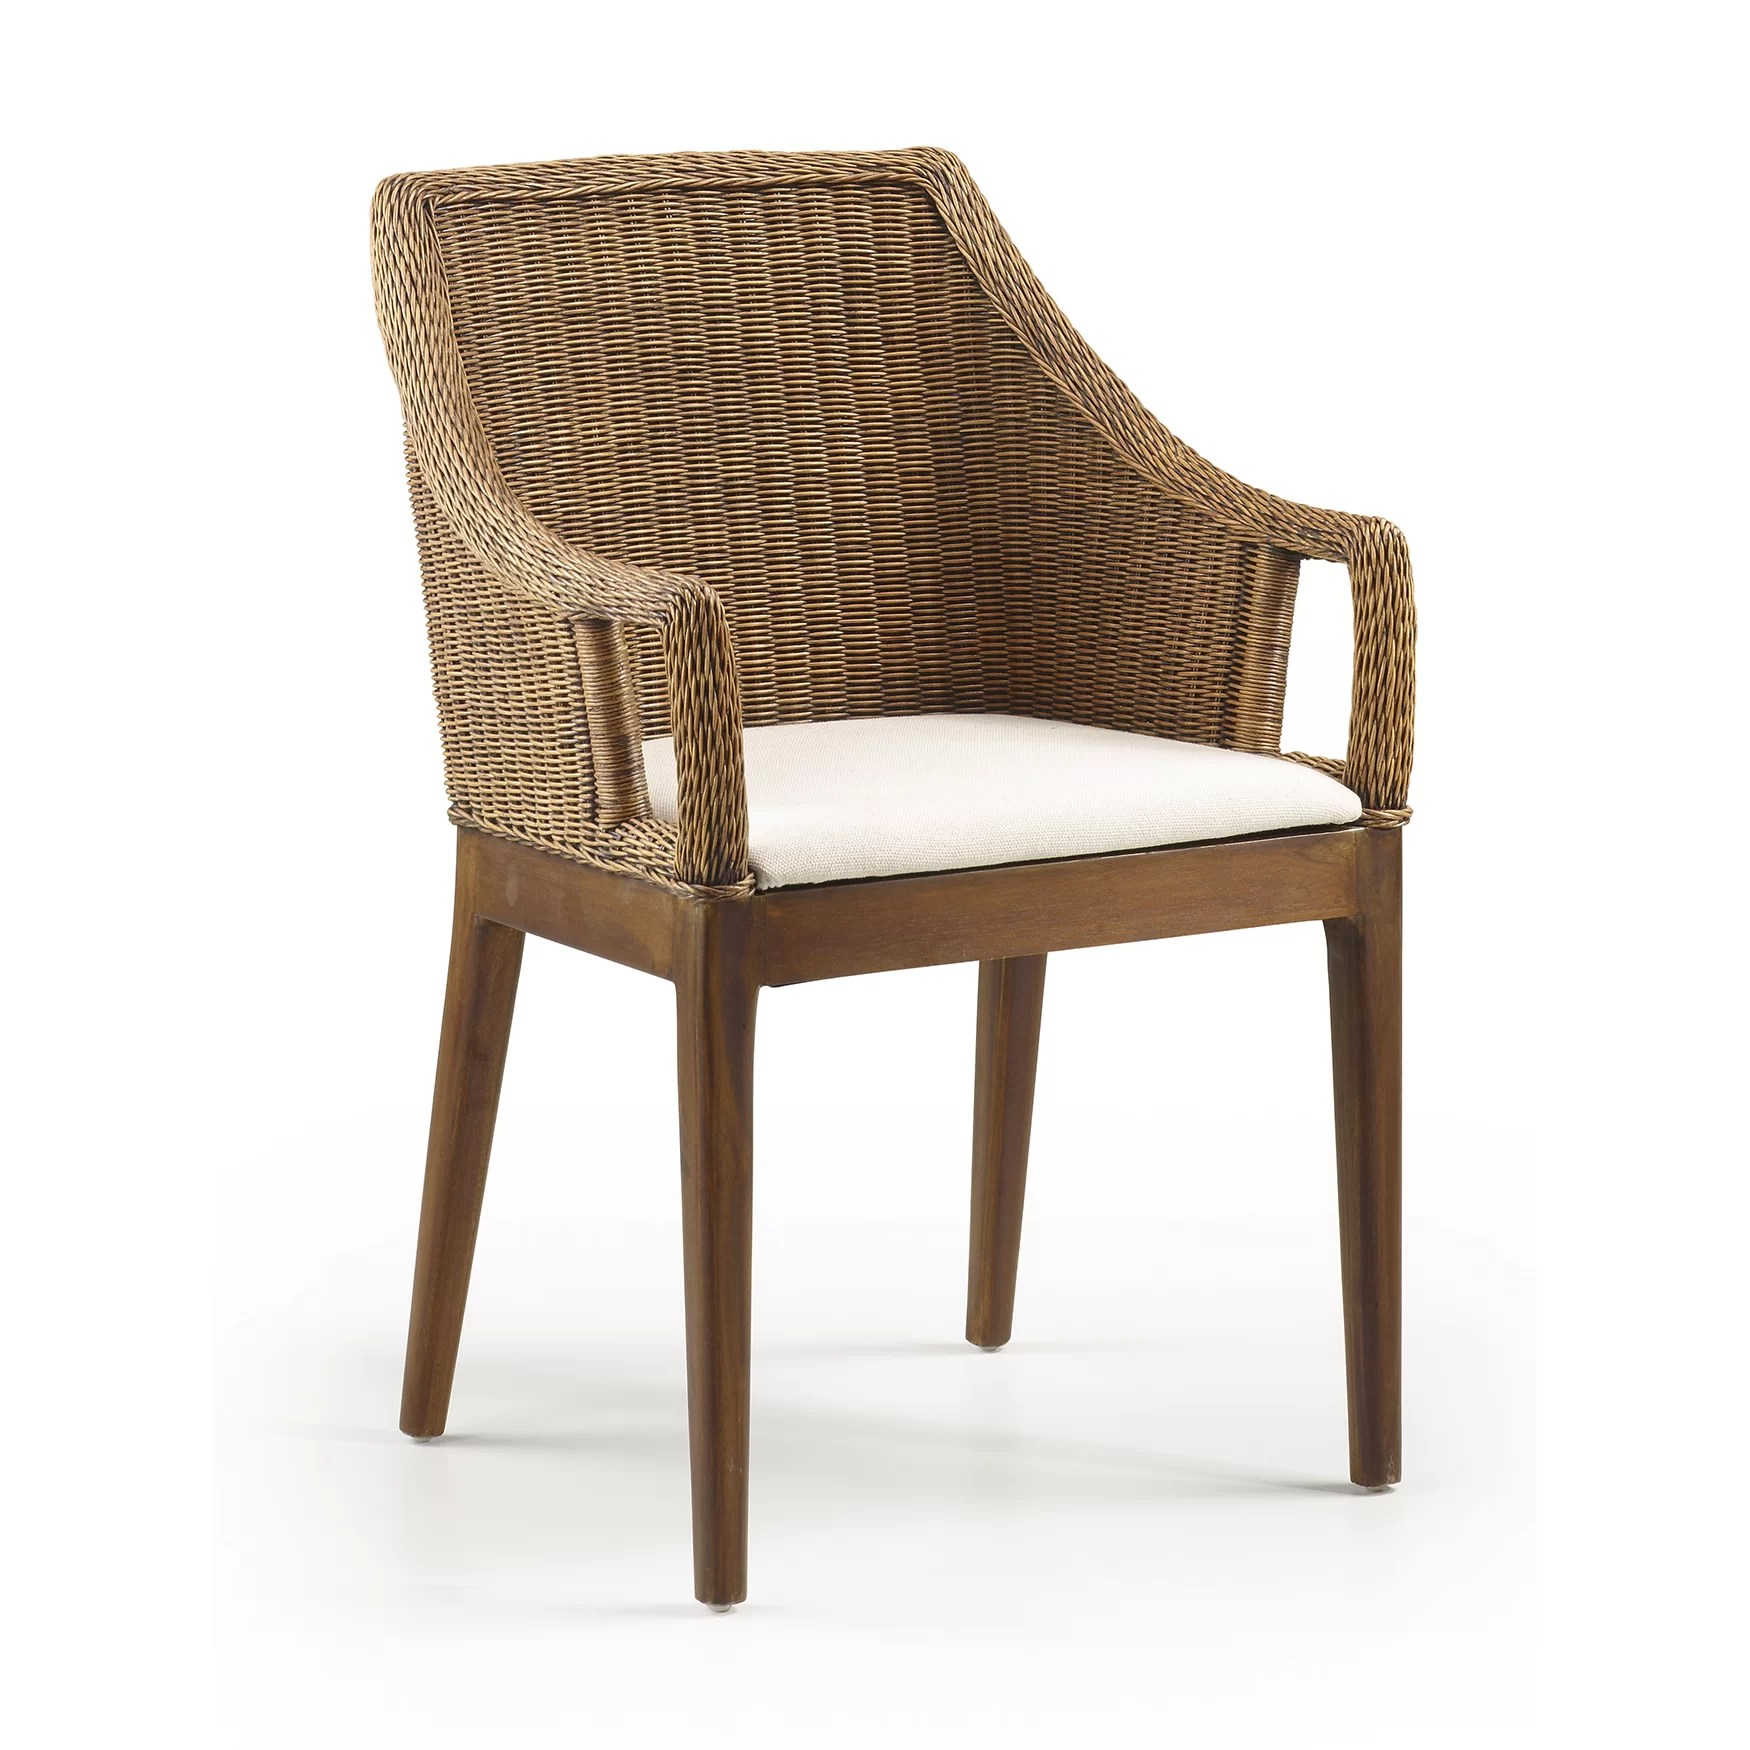 Wayfair Dining Chairs Upholstered Dining Chair Wayfair Uk